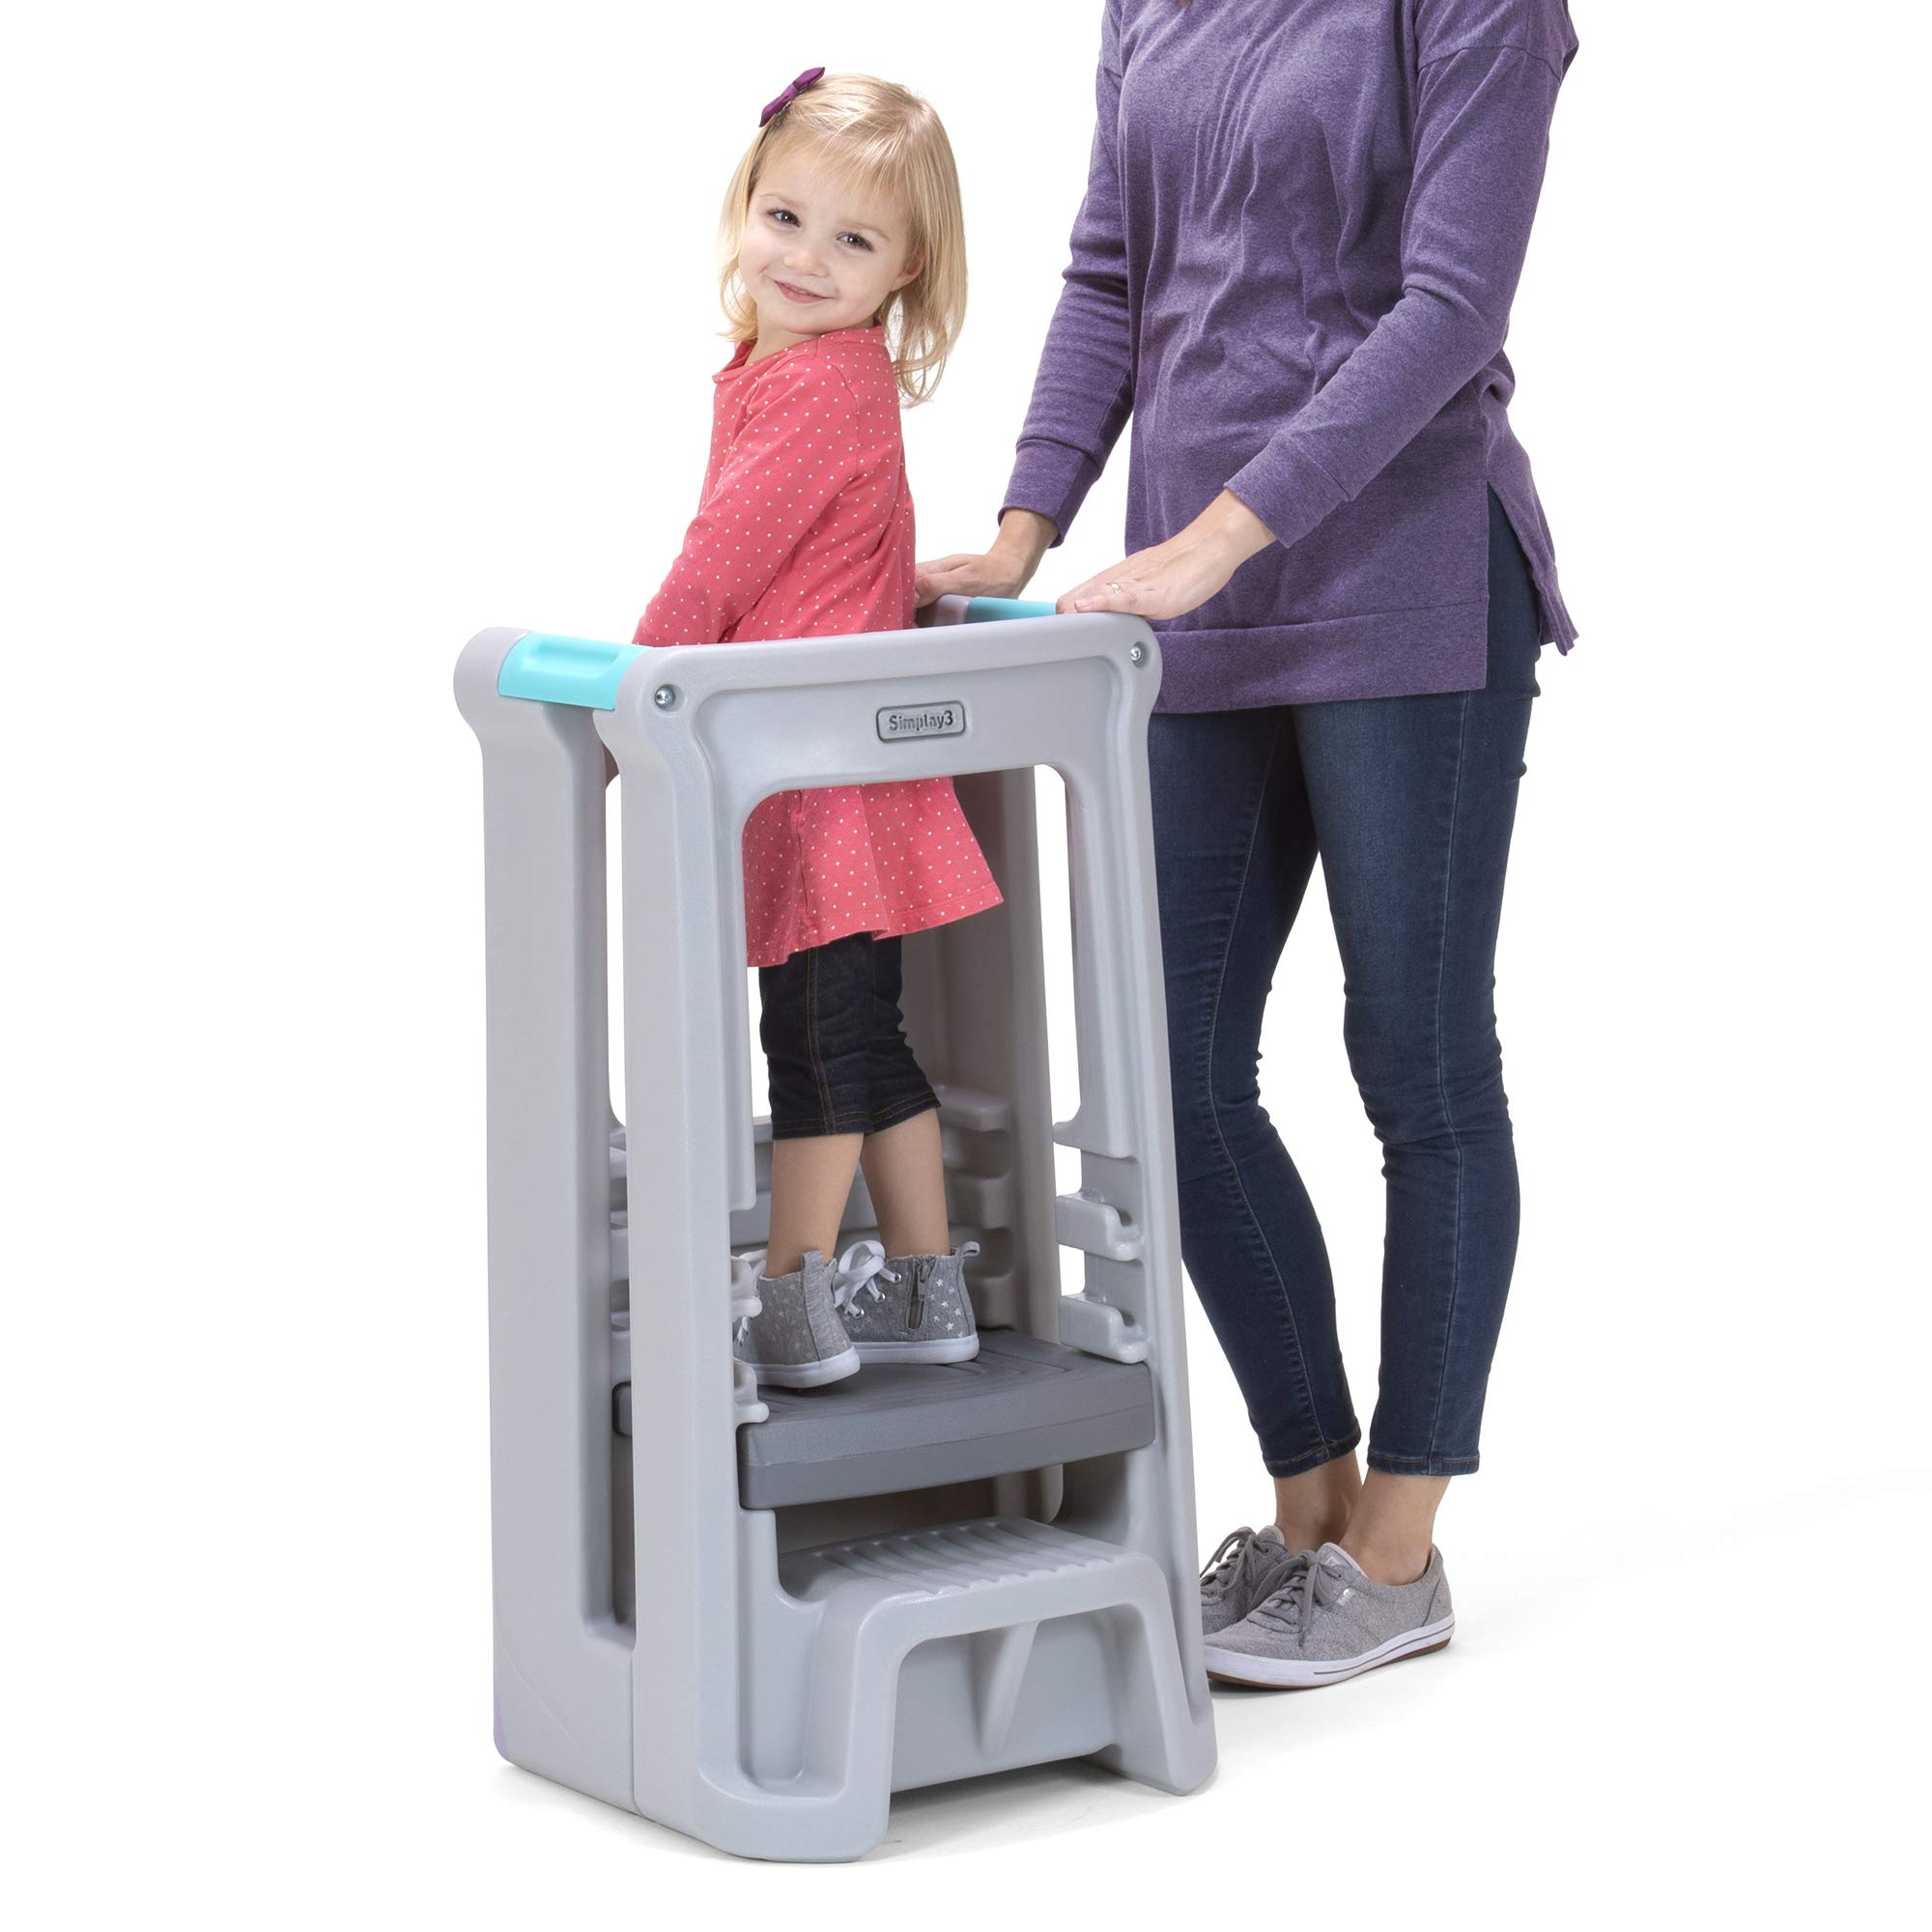 Simplay3 Toddler Tower Childrens Step Stool with Three Adjustable Heights, Gray by Simplay3 (Image #1)